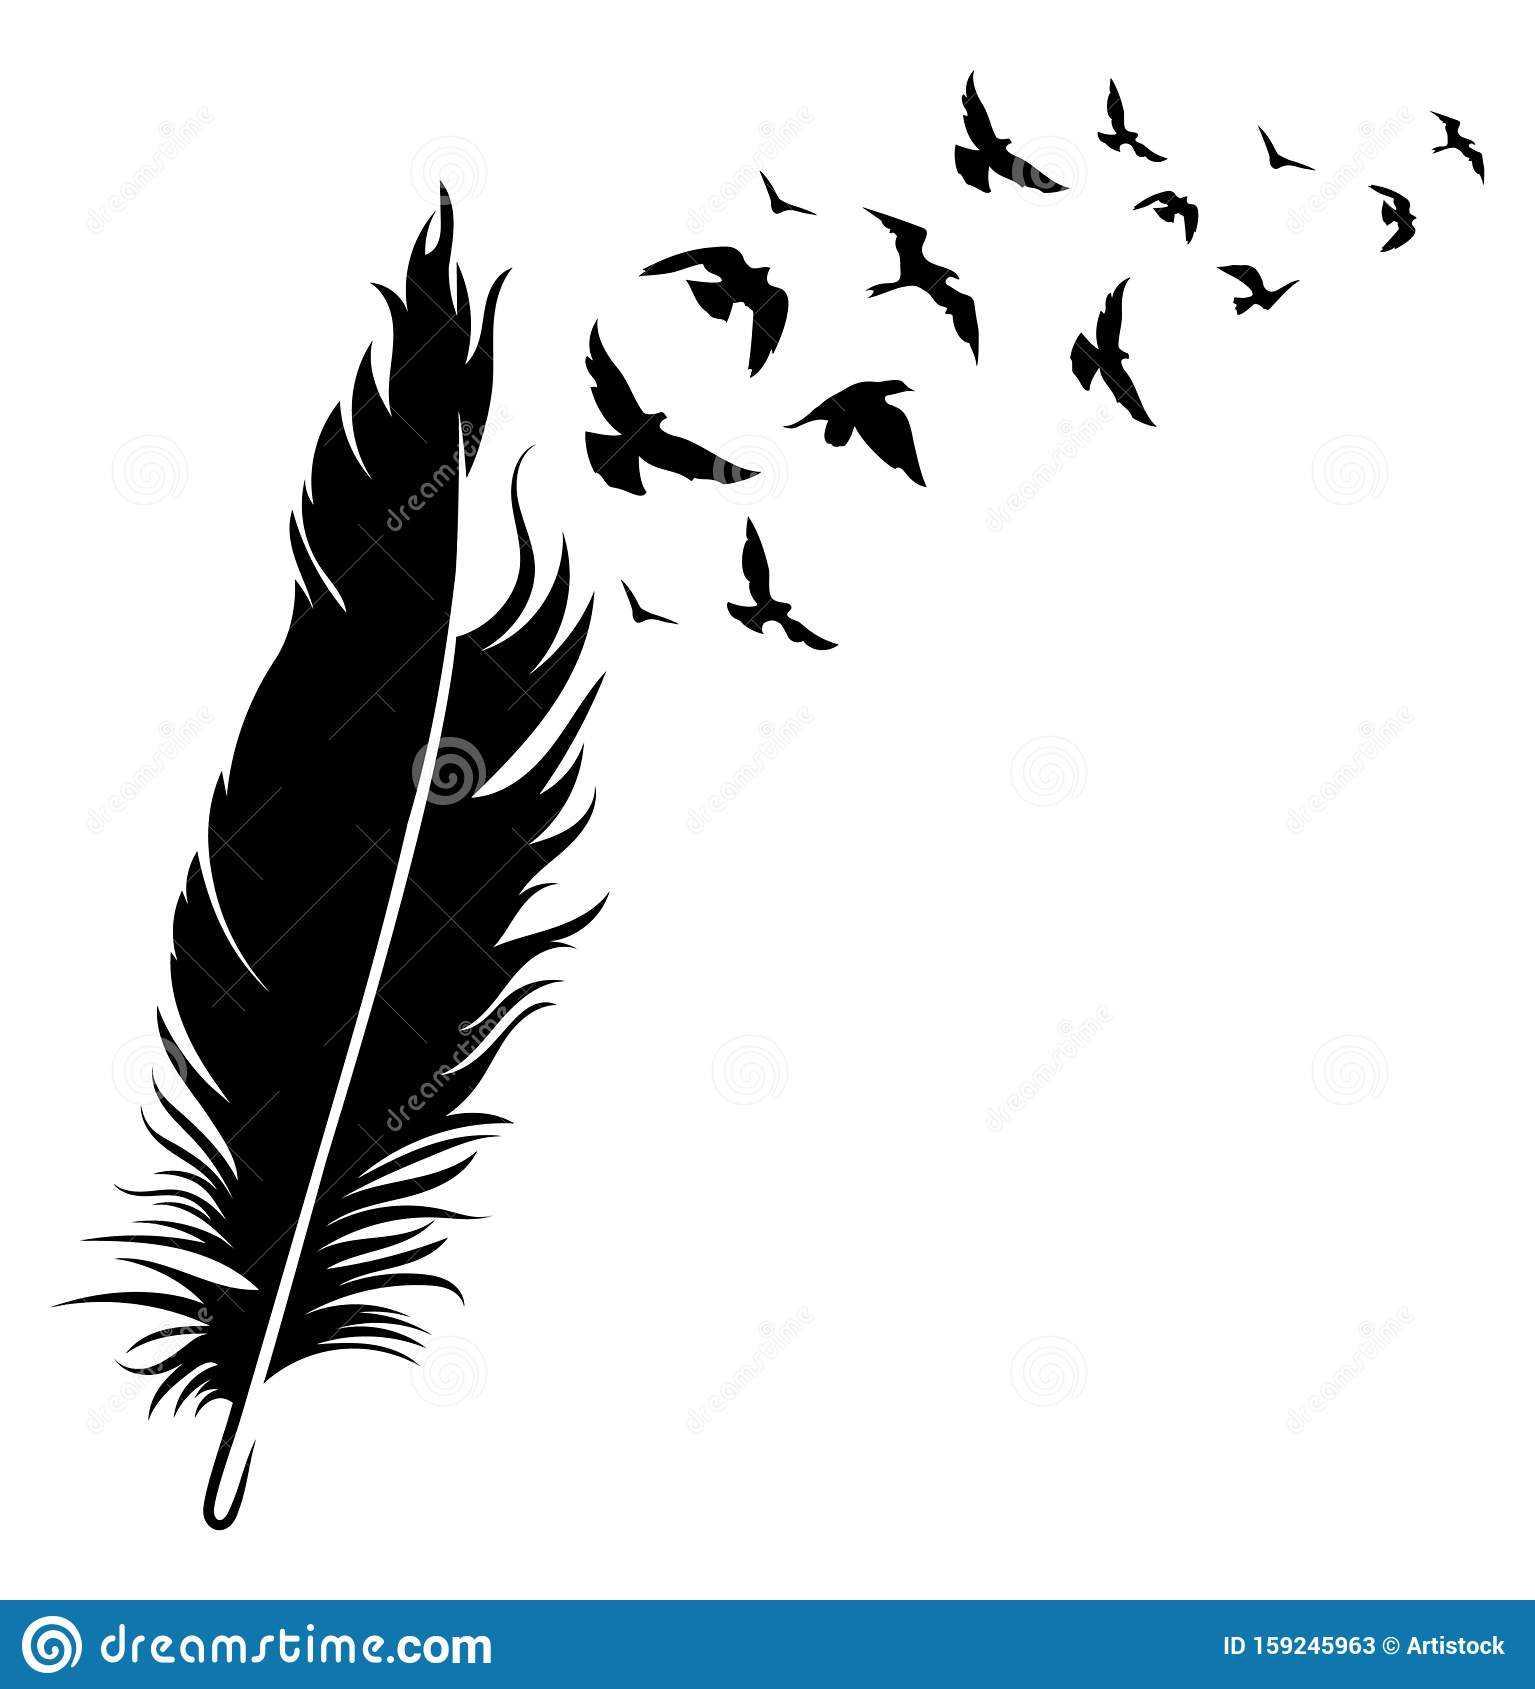 Feather And Birds Black And White Vector Illustration Of Stylized